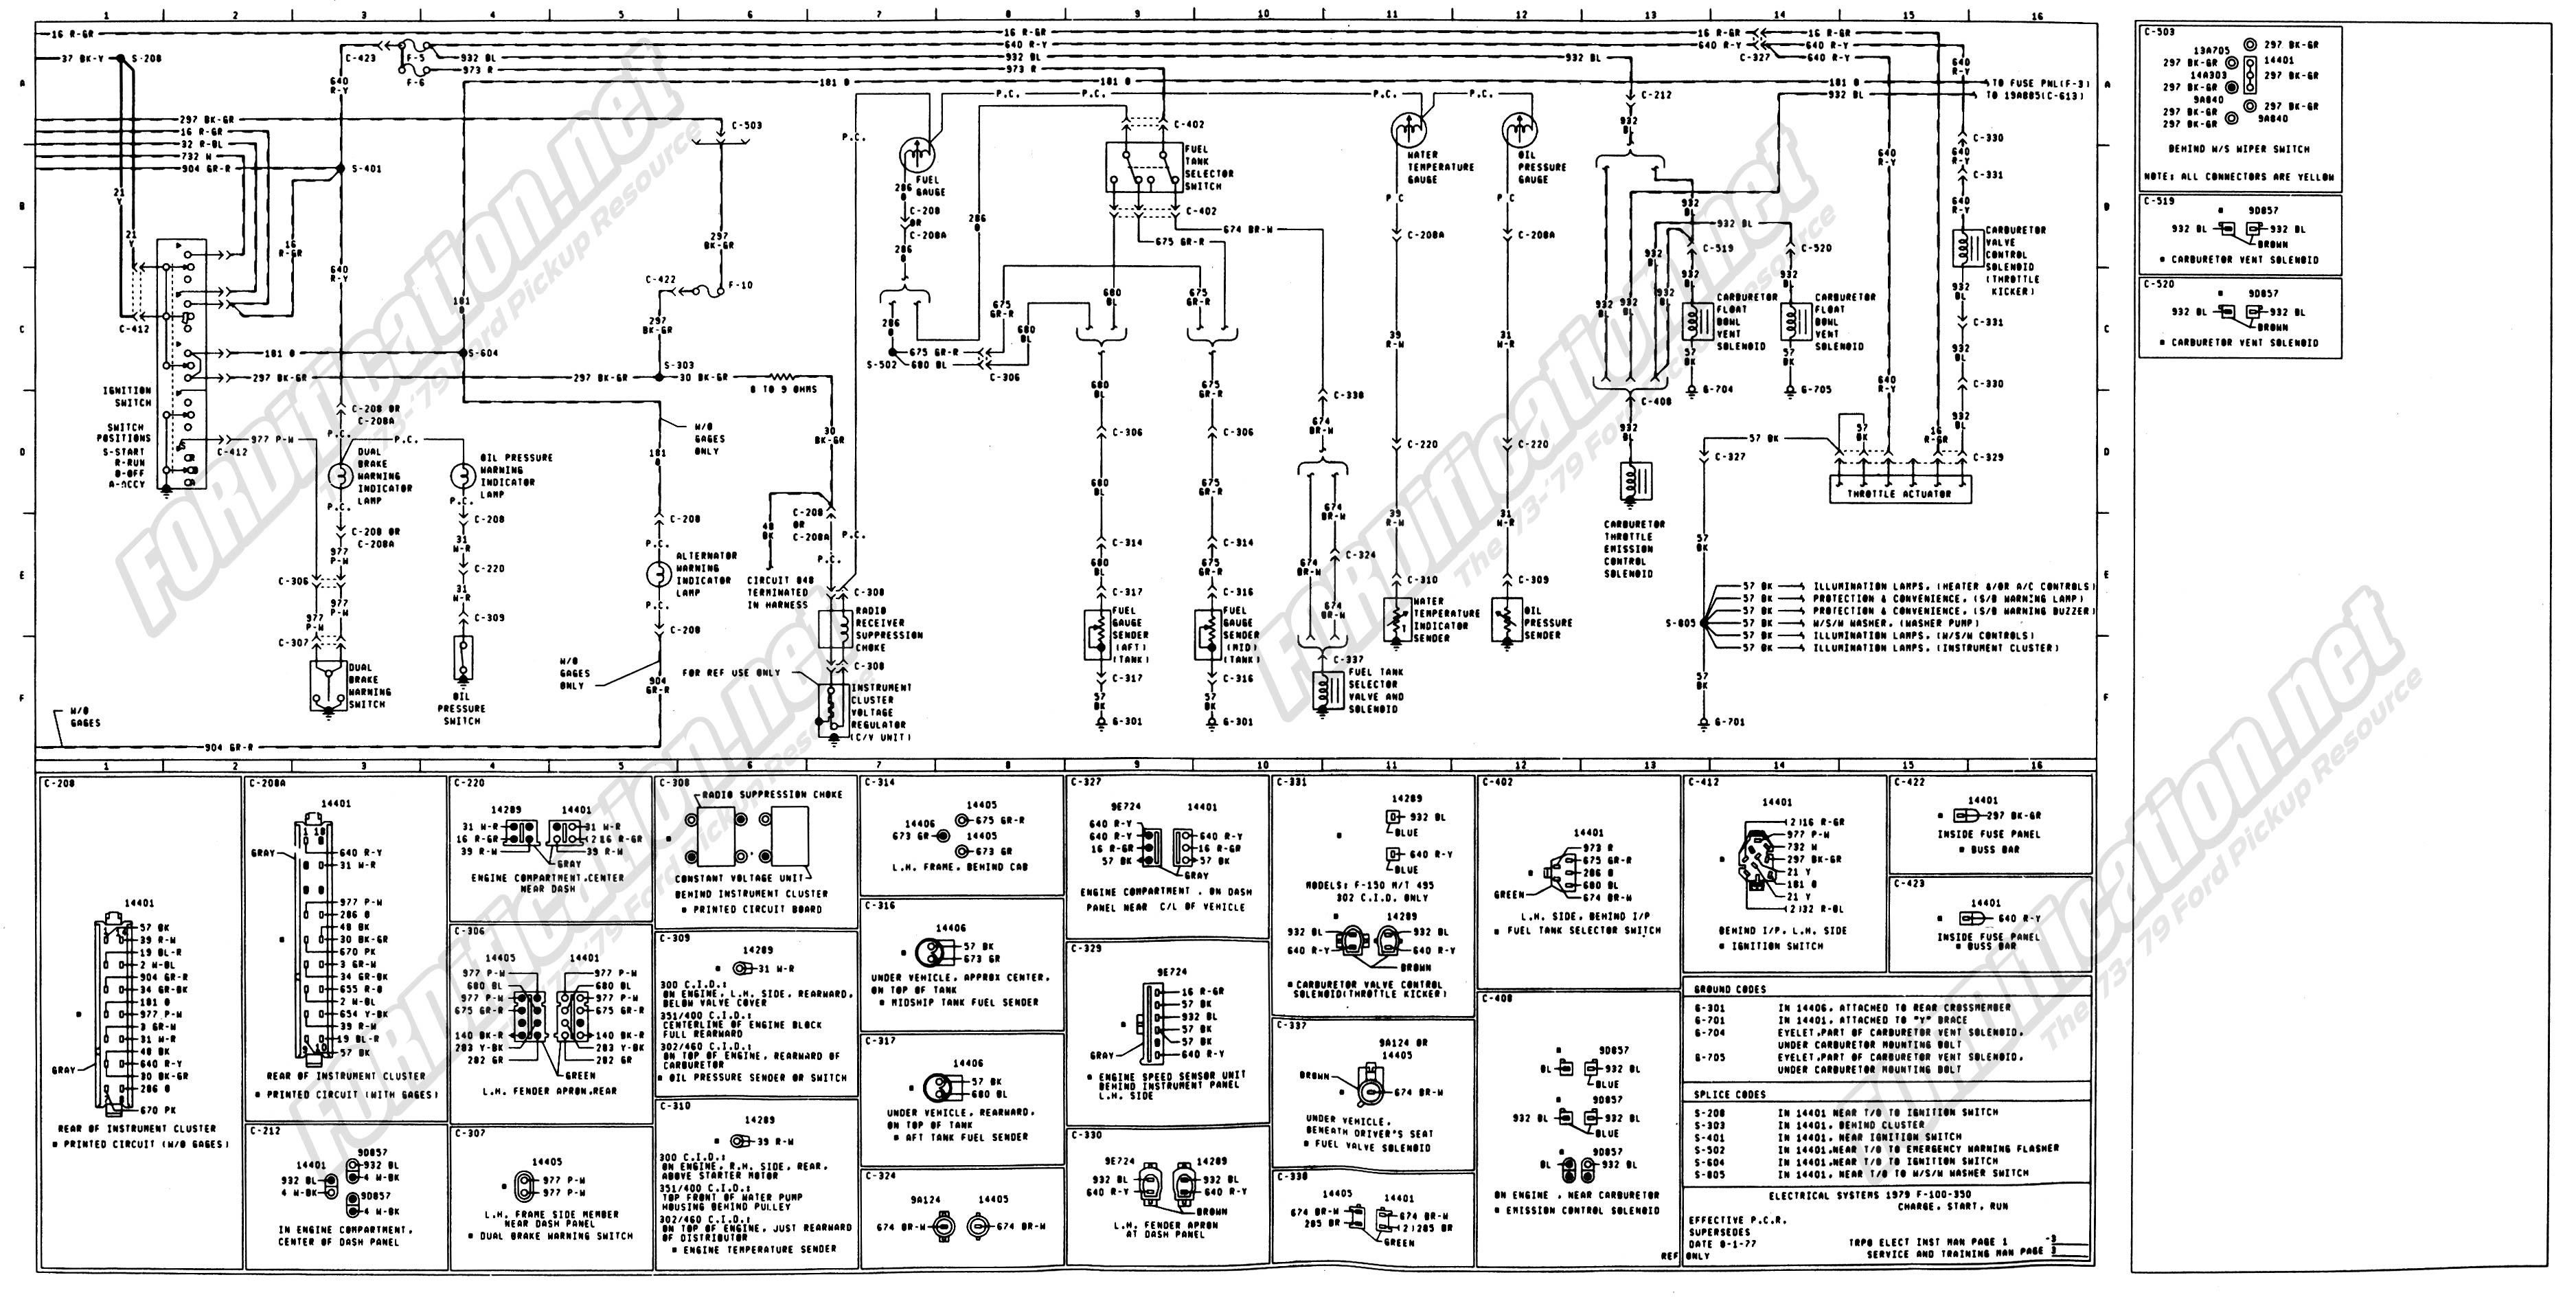 Ford 2004 Injector Wiring Diagram 6 0 Diesel Wire Colors | Wiring - 6 Wire Trailer Wiring Diagram